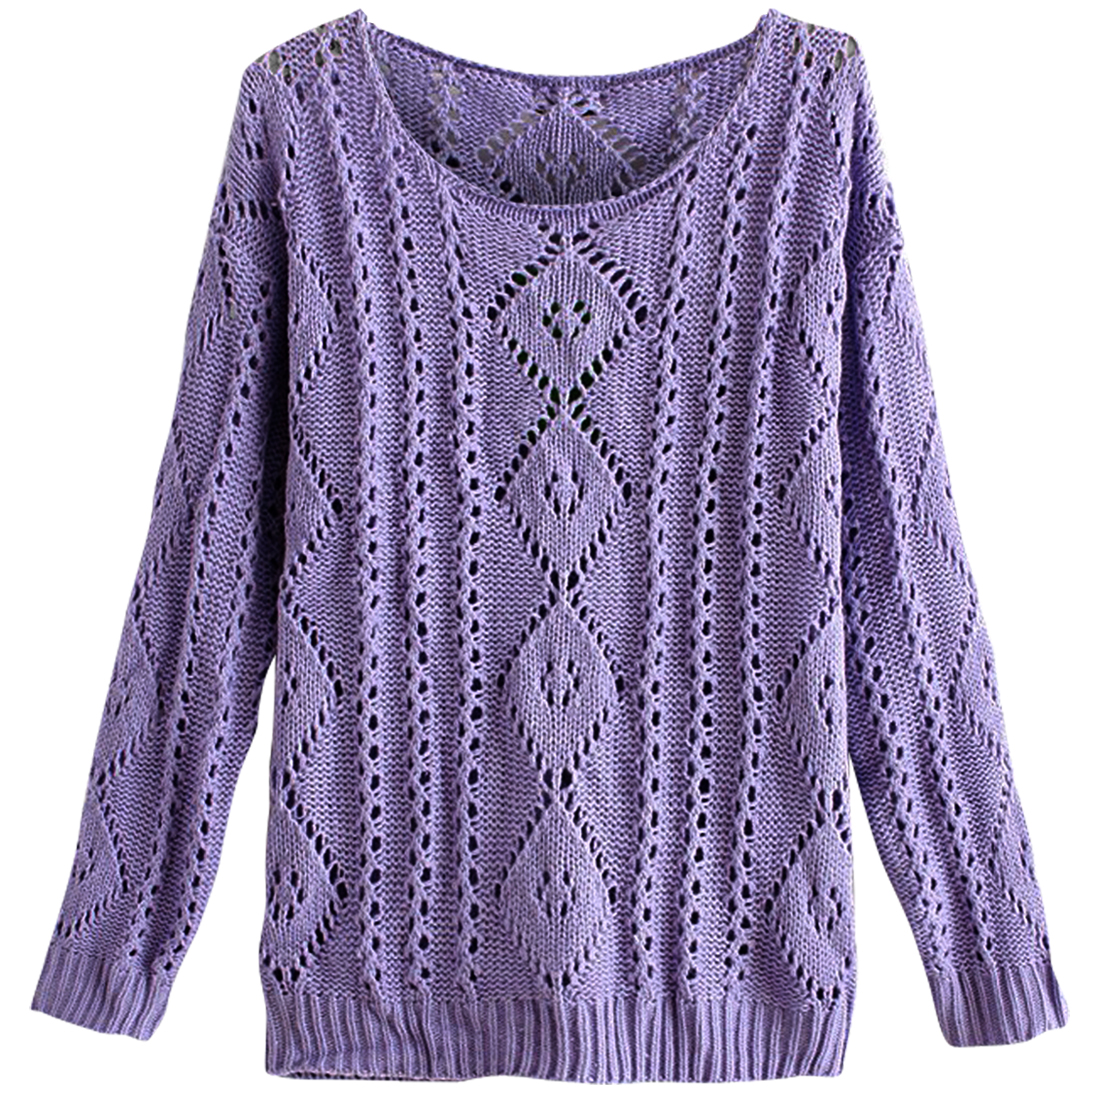 Women's Pullover Purple Hollow Out Knitted Sweater S